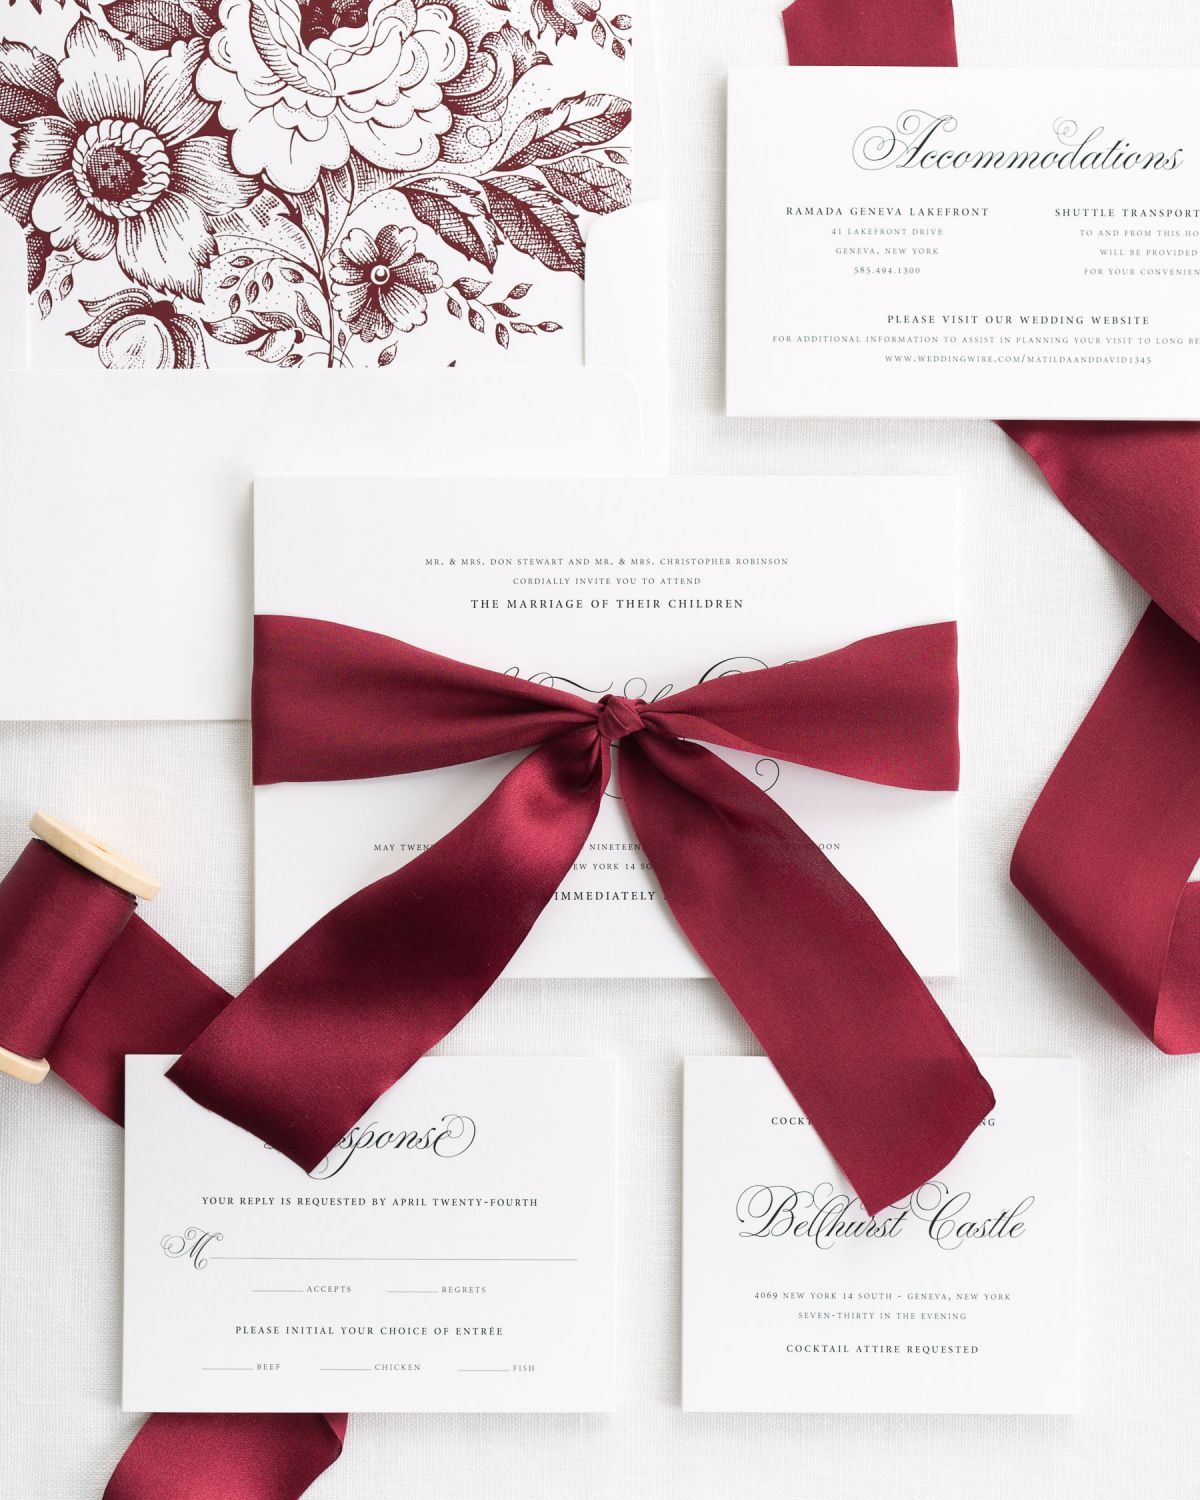 Complete Wedding Invitation Package with Red Ribbon and Enclosures